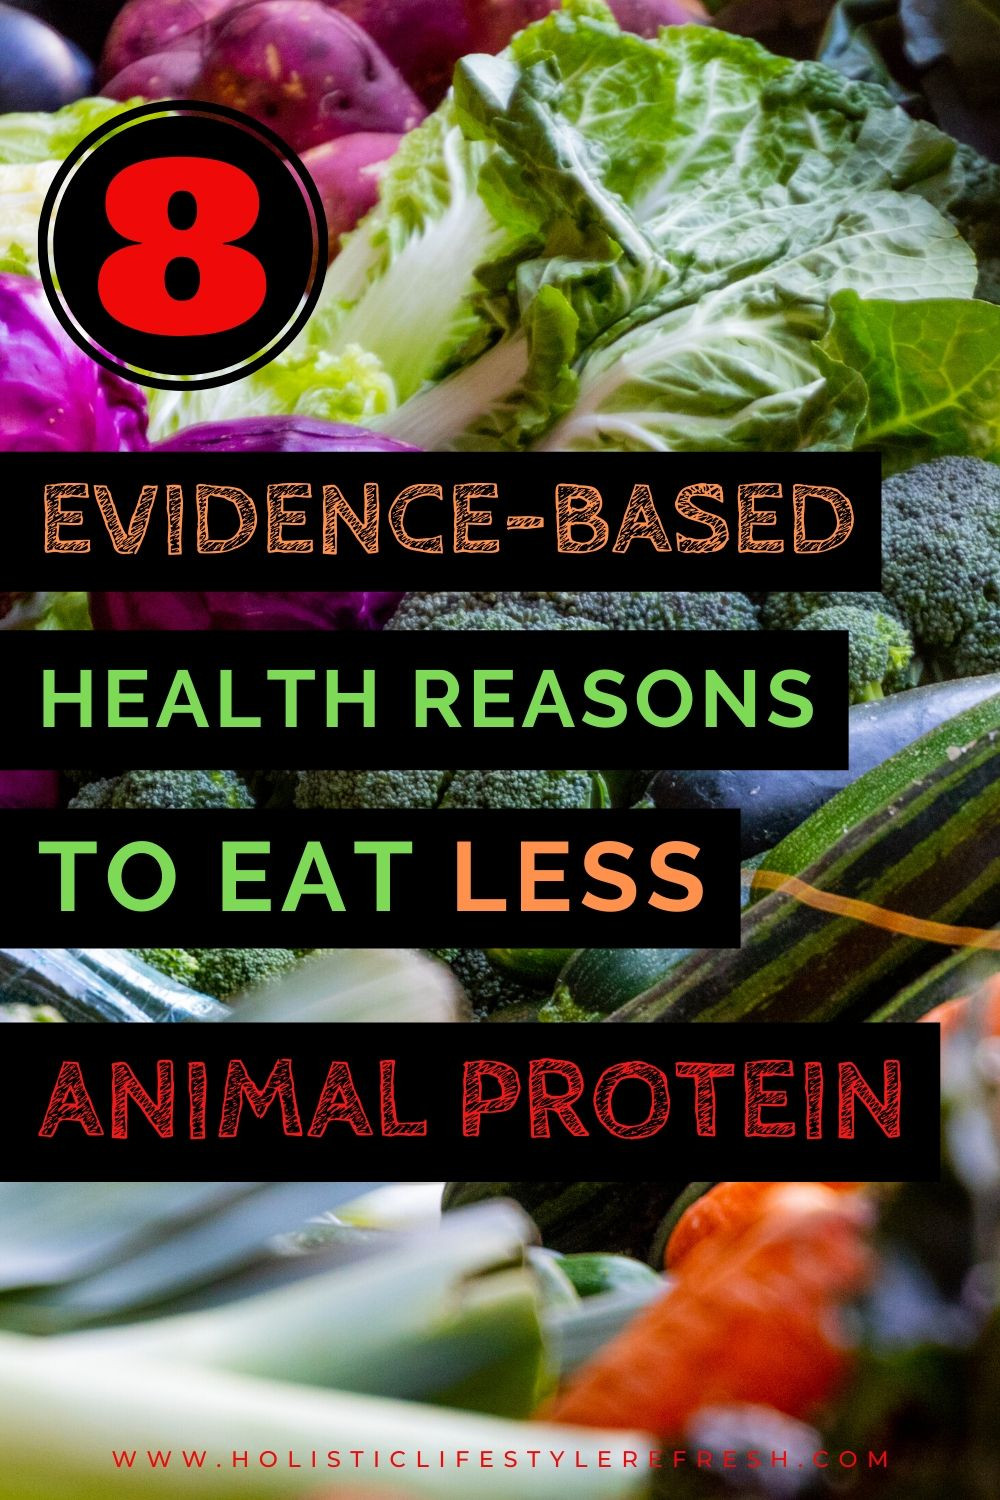 Eat less meat benefits | reasons to eat less meat | how to eat less meat | healthy eating facts | evidence based nutrition | proteinaholic summary | proteinaholic key points | eat less animal protein | benefits of going vegan health | plant based diet health benefits | is meat healthy | is meat bad for you | is meat good for you | what is the healthiest diet